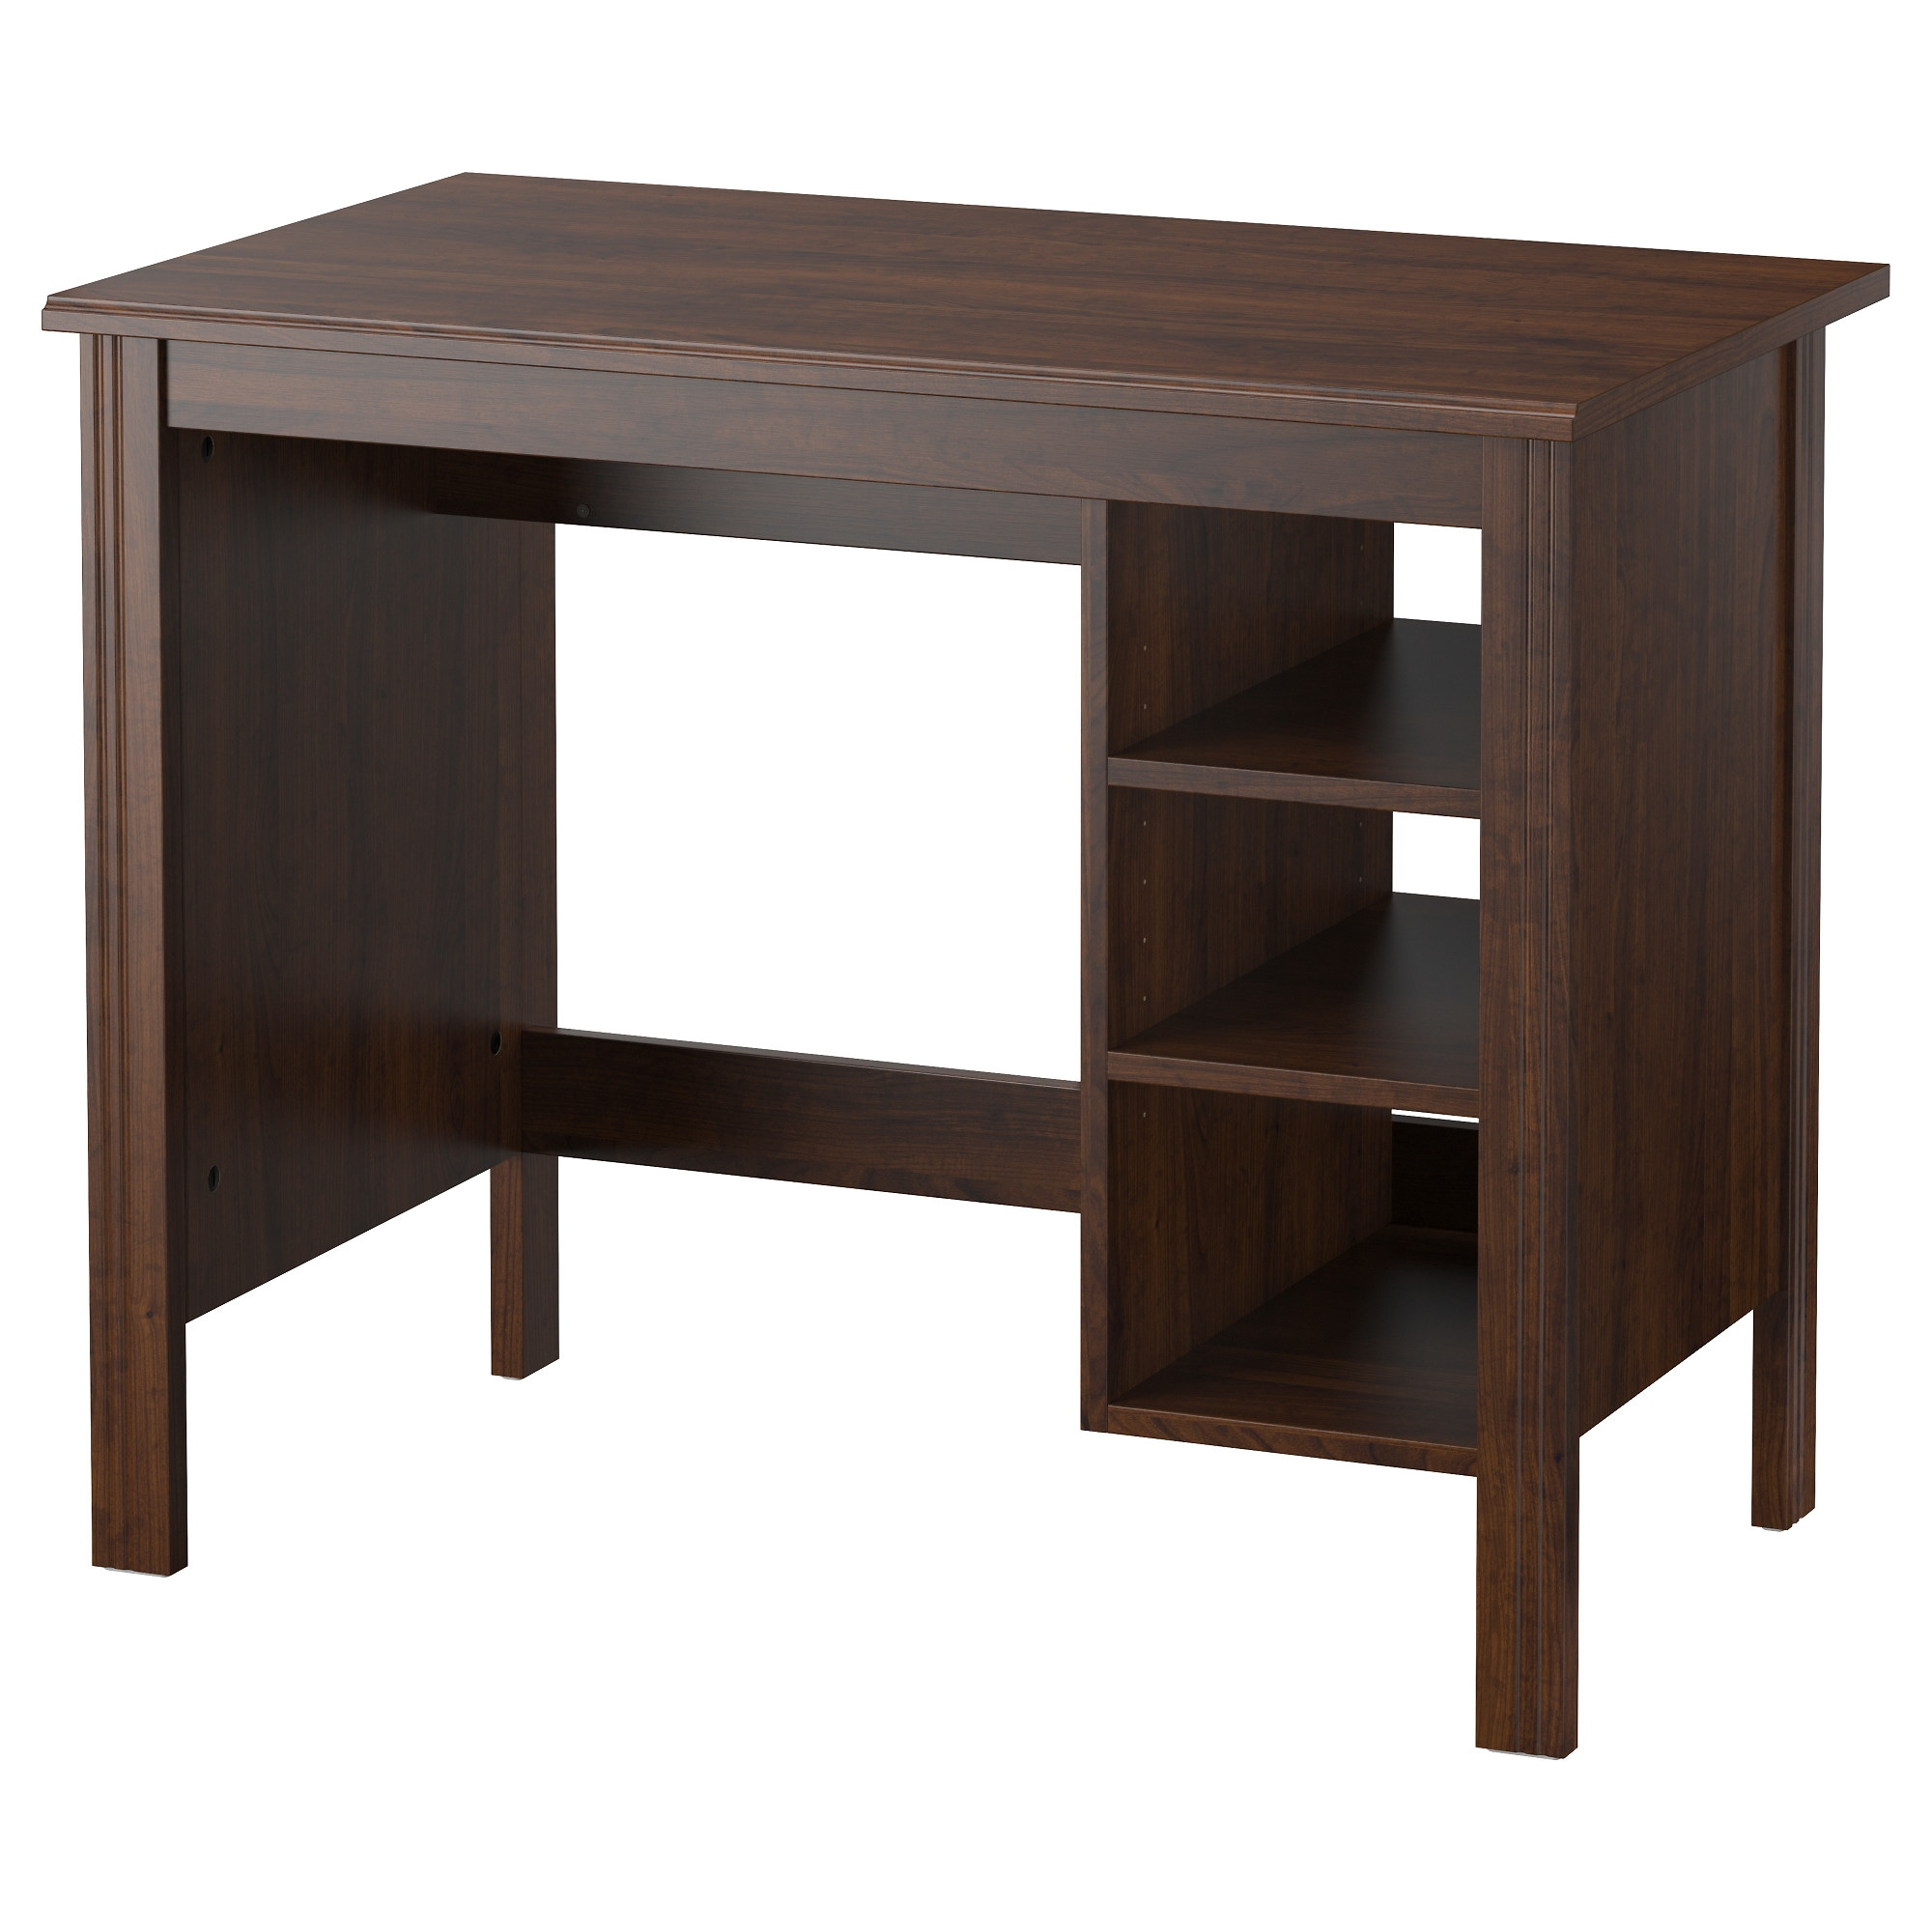 brusali desk  ikea -